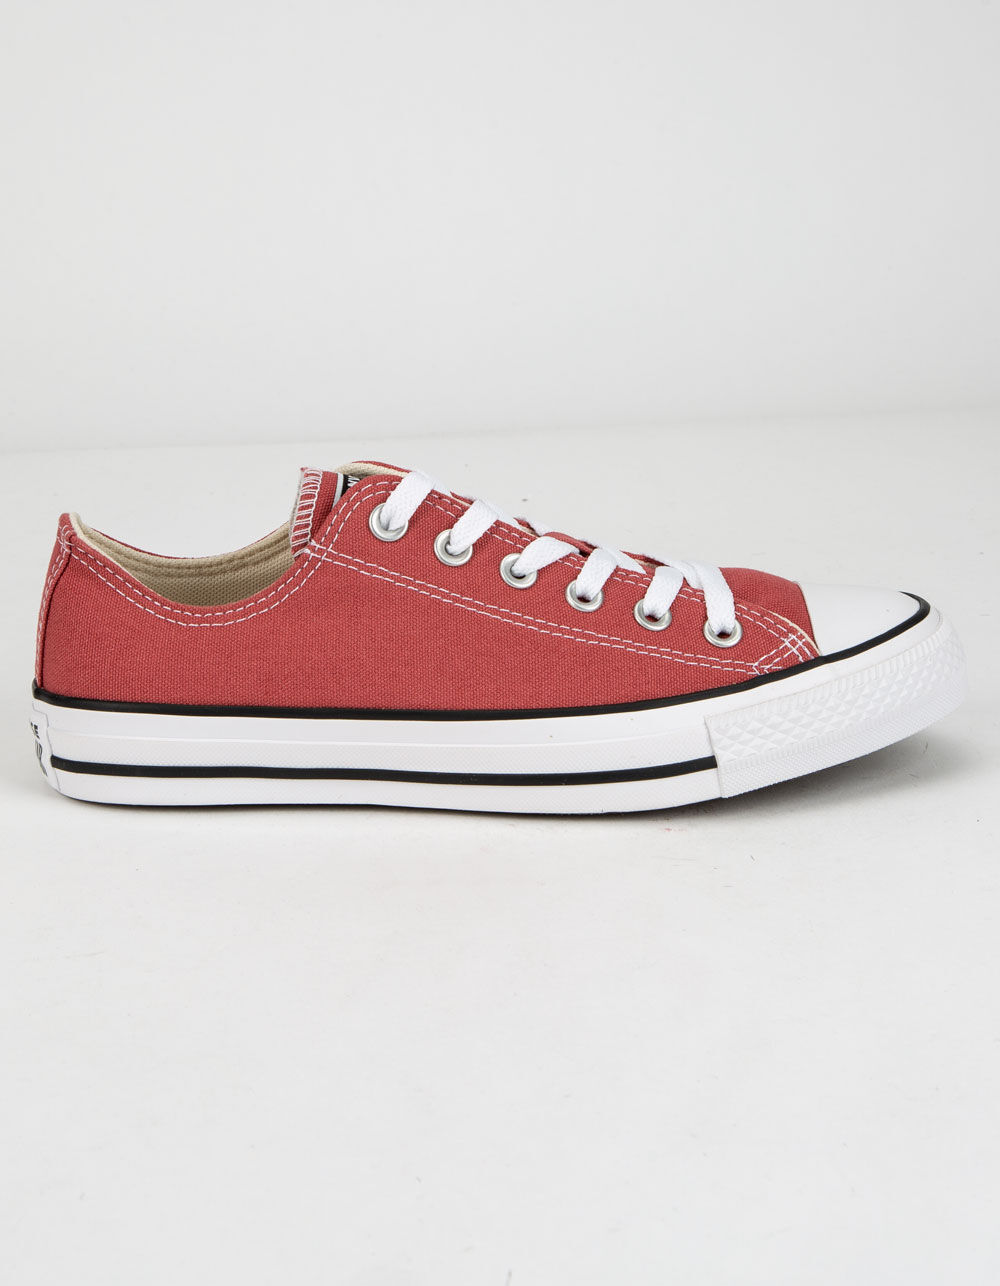 CONVERSE Chuck Taylor All Star Seasonal Color Low Top Light Redwood Shoes